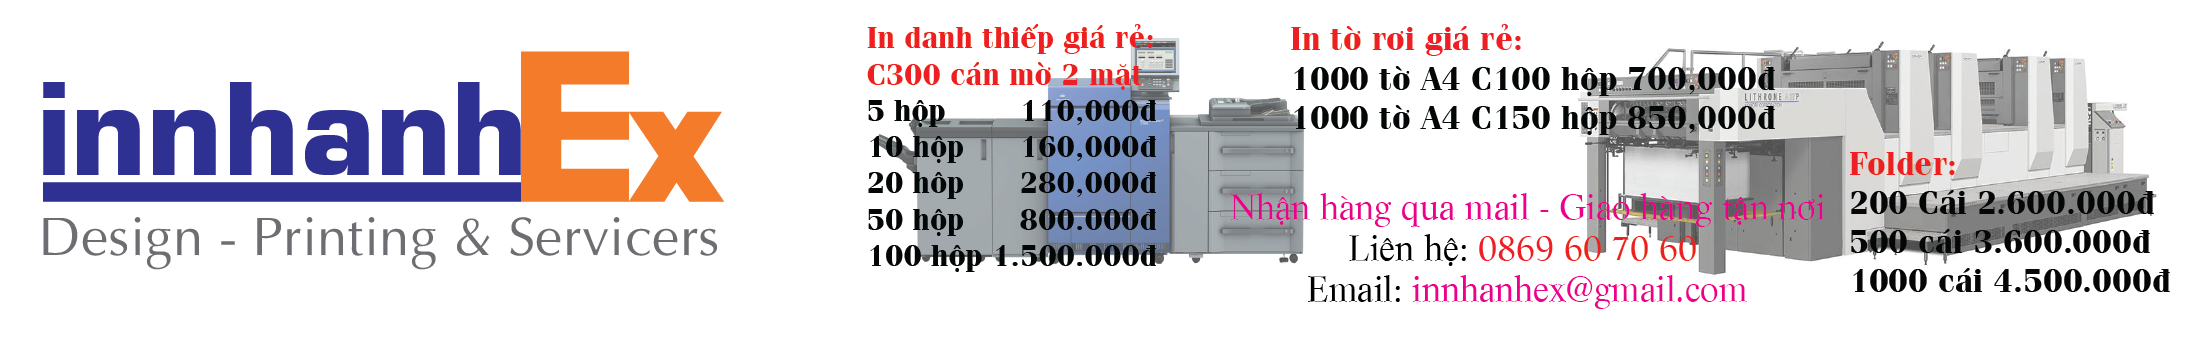 Thiết kế, in ấn, in nhanh, in offset, in banner, in bao thư, in bìa đựng hồ sơ, in catalogue,